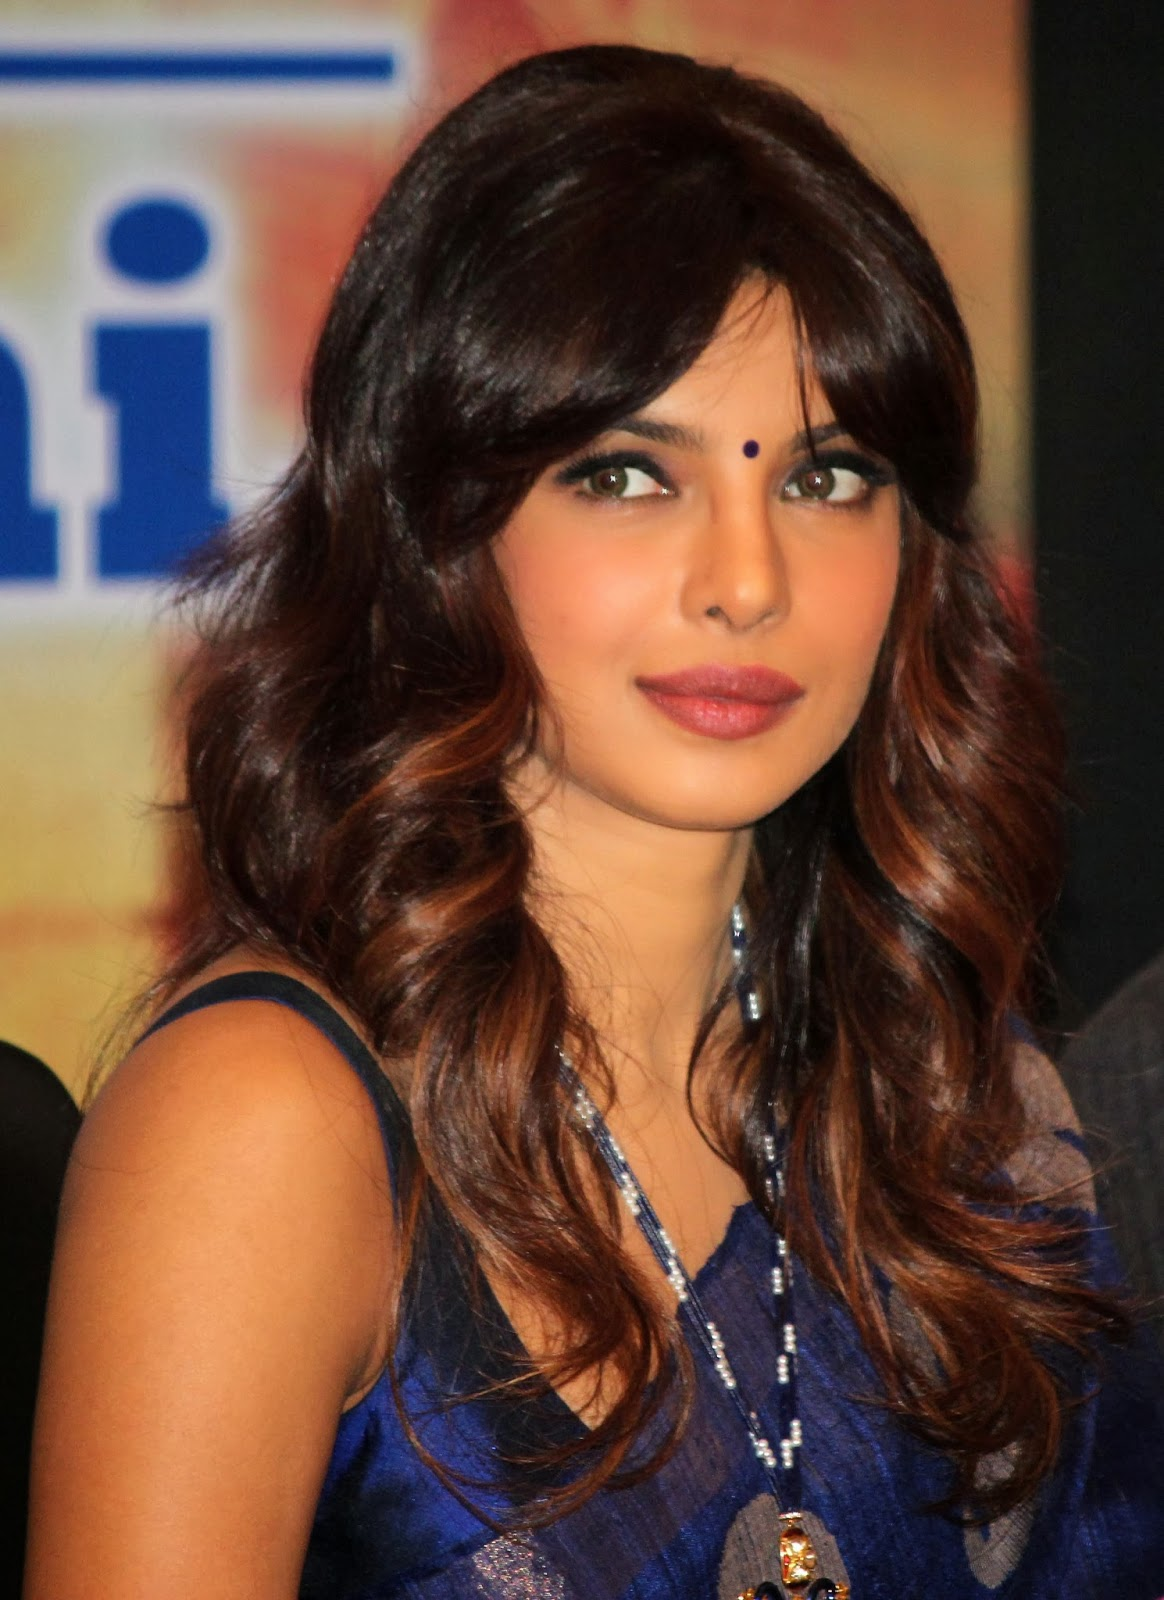 Priyanka Chopra 2016 Latest Hot Photos In Blue Saree